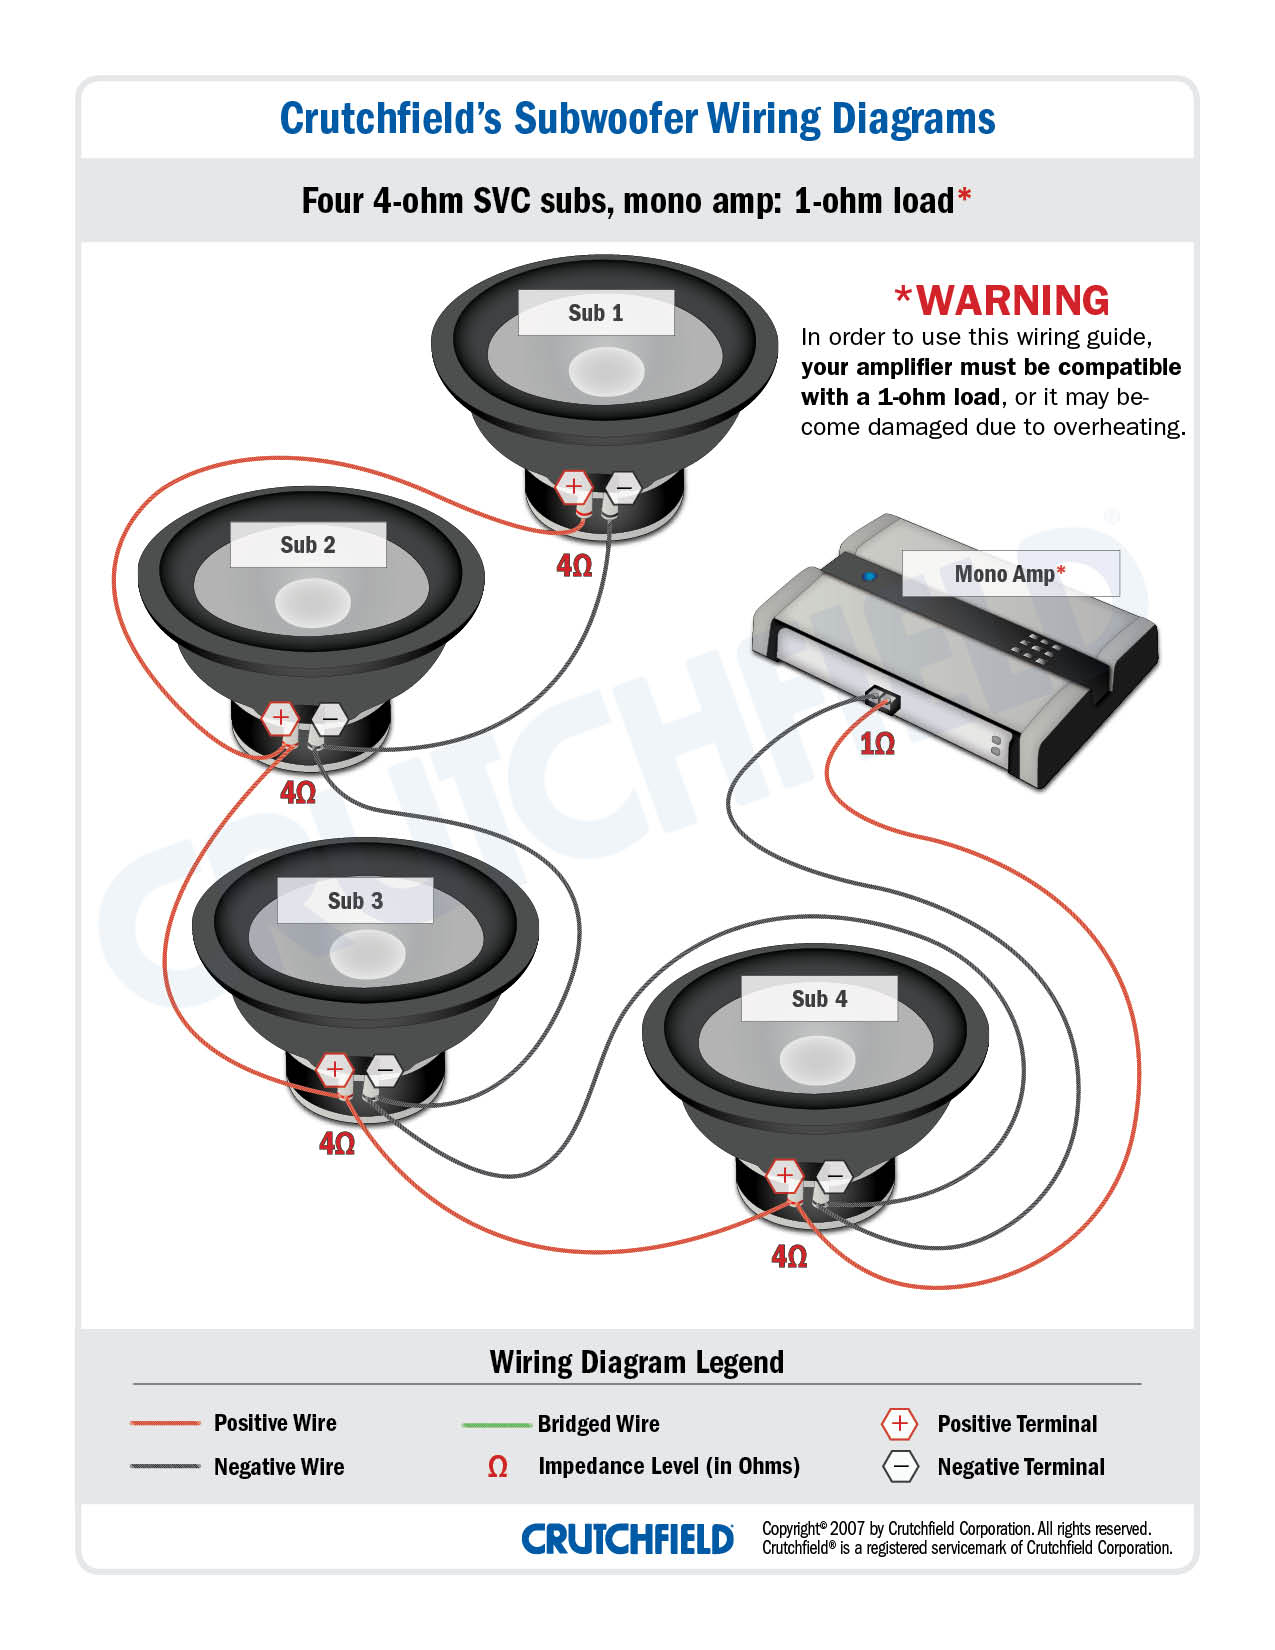 4 SVC 4 ohm mono low imp wiring subwoofers what's all this about ohms? crutchfield wiring diagrams at crackthecode.co